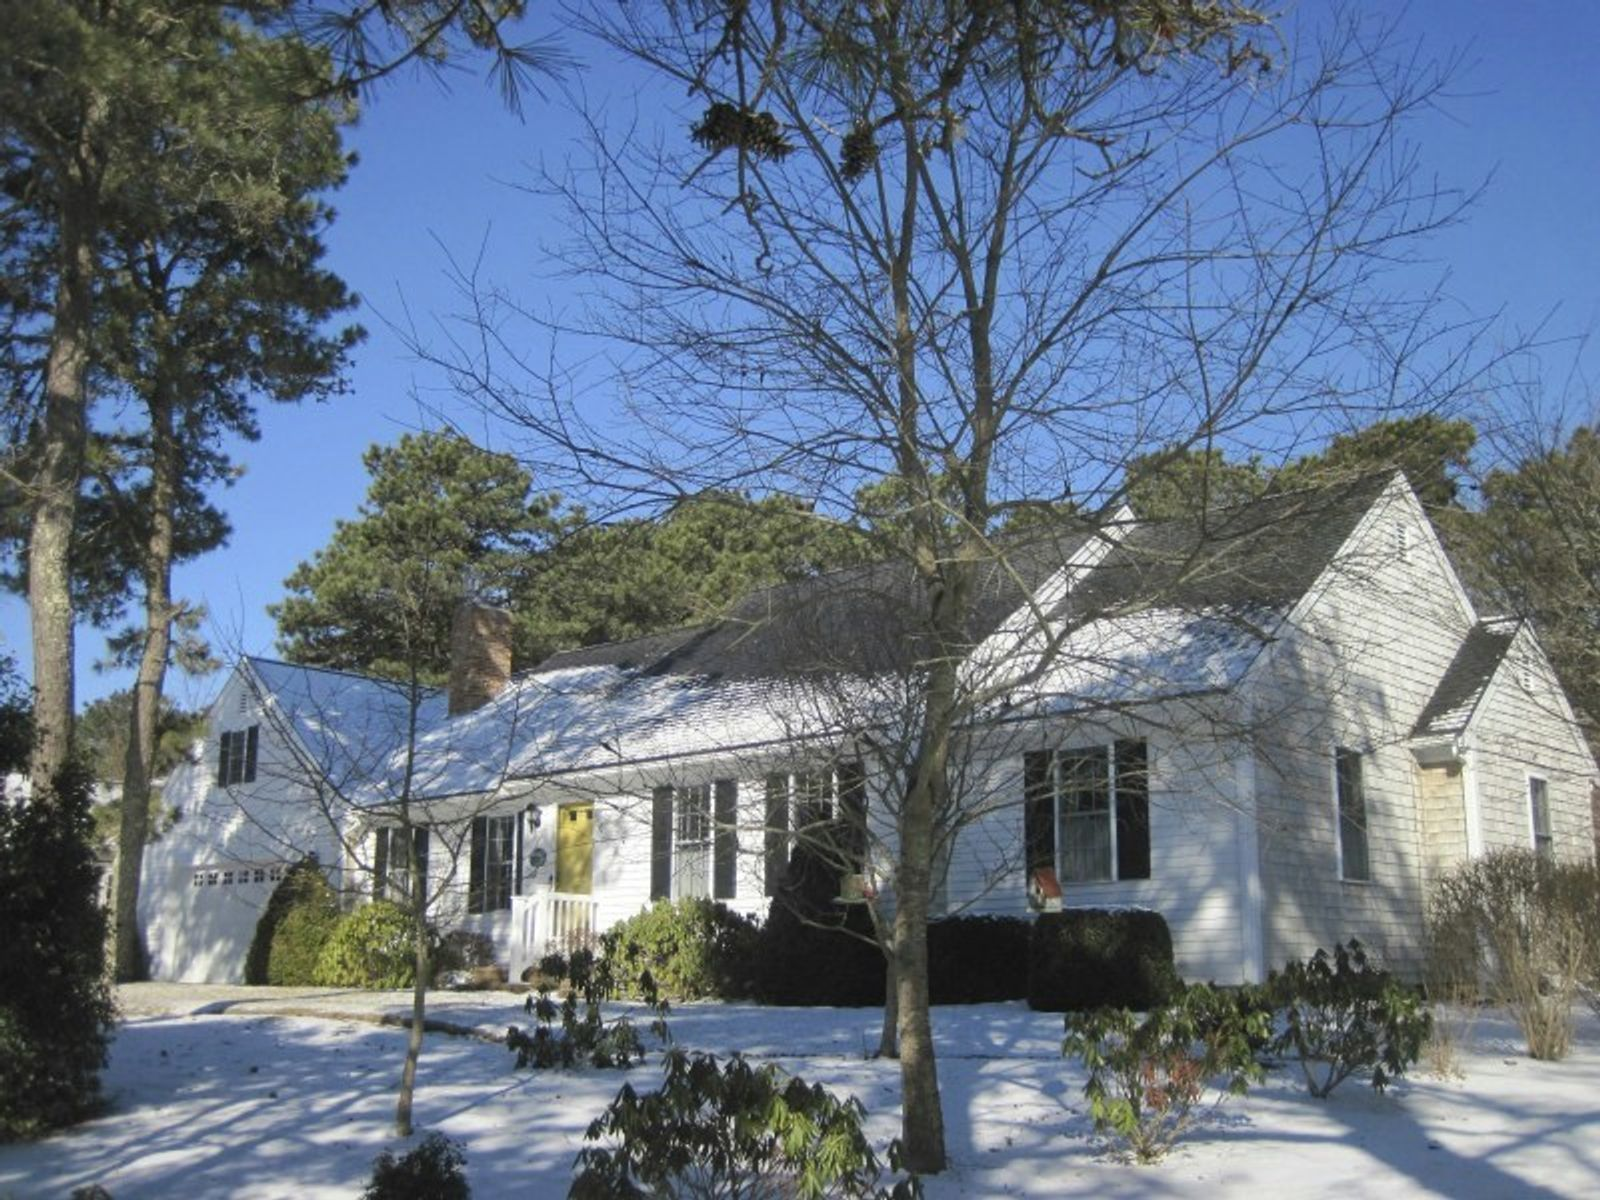 Immaculate Home in Lovely Neighborhood, South Dennis MA Single Family Home - Cape Cod Real Estate